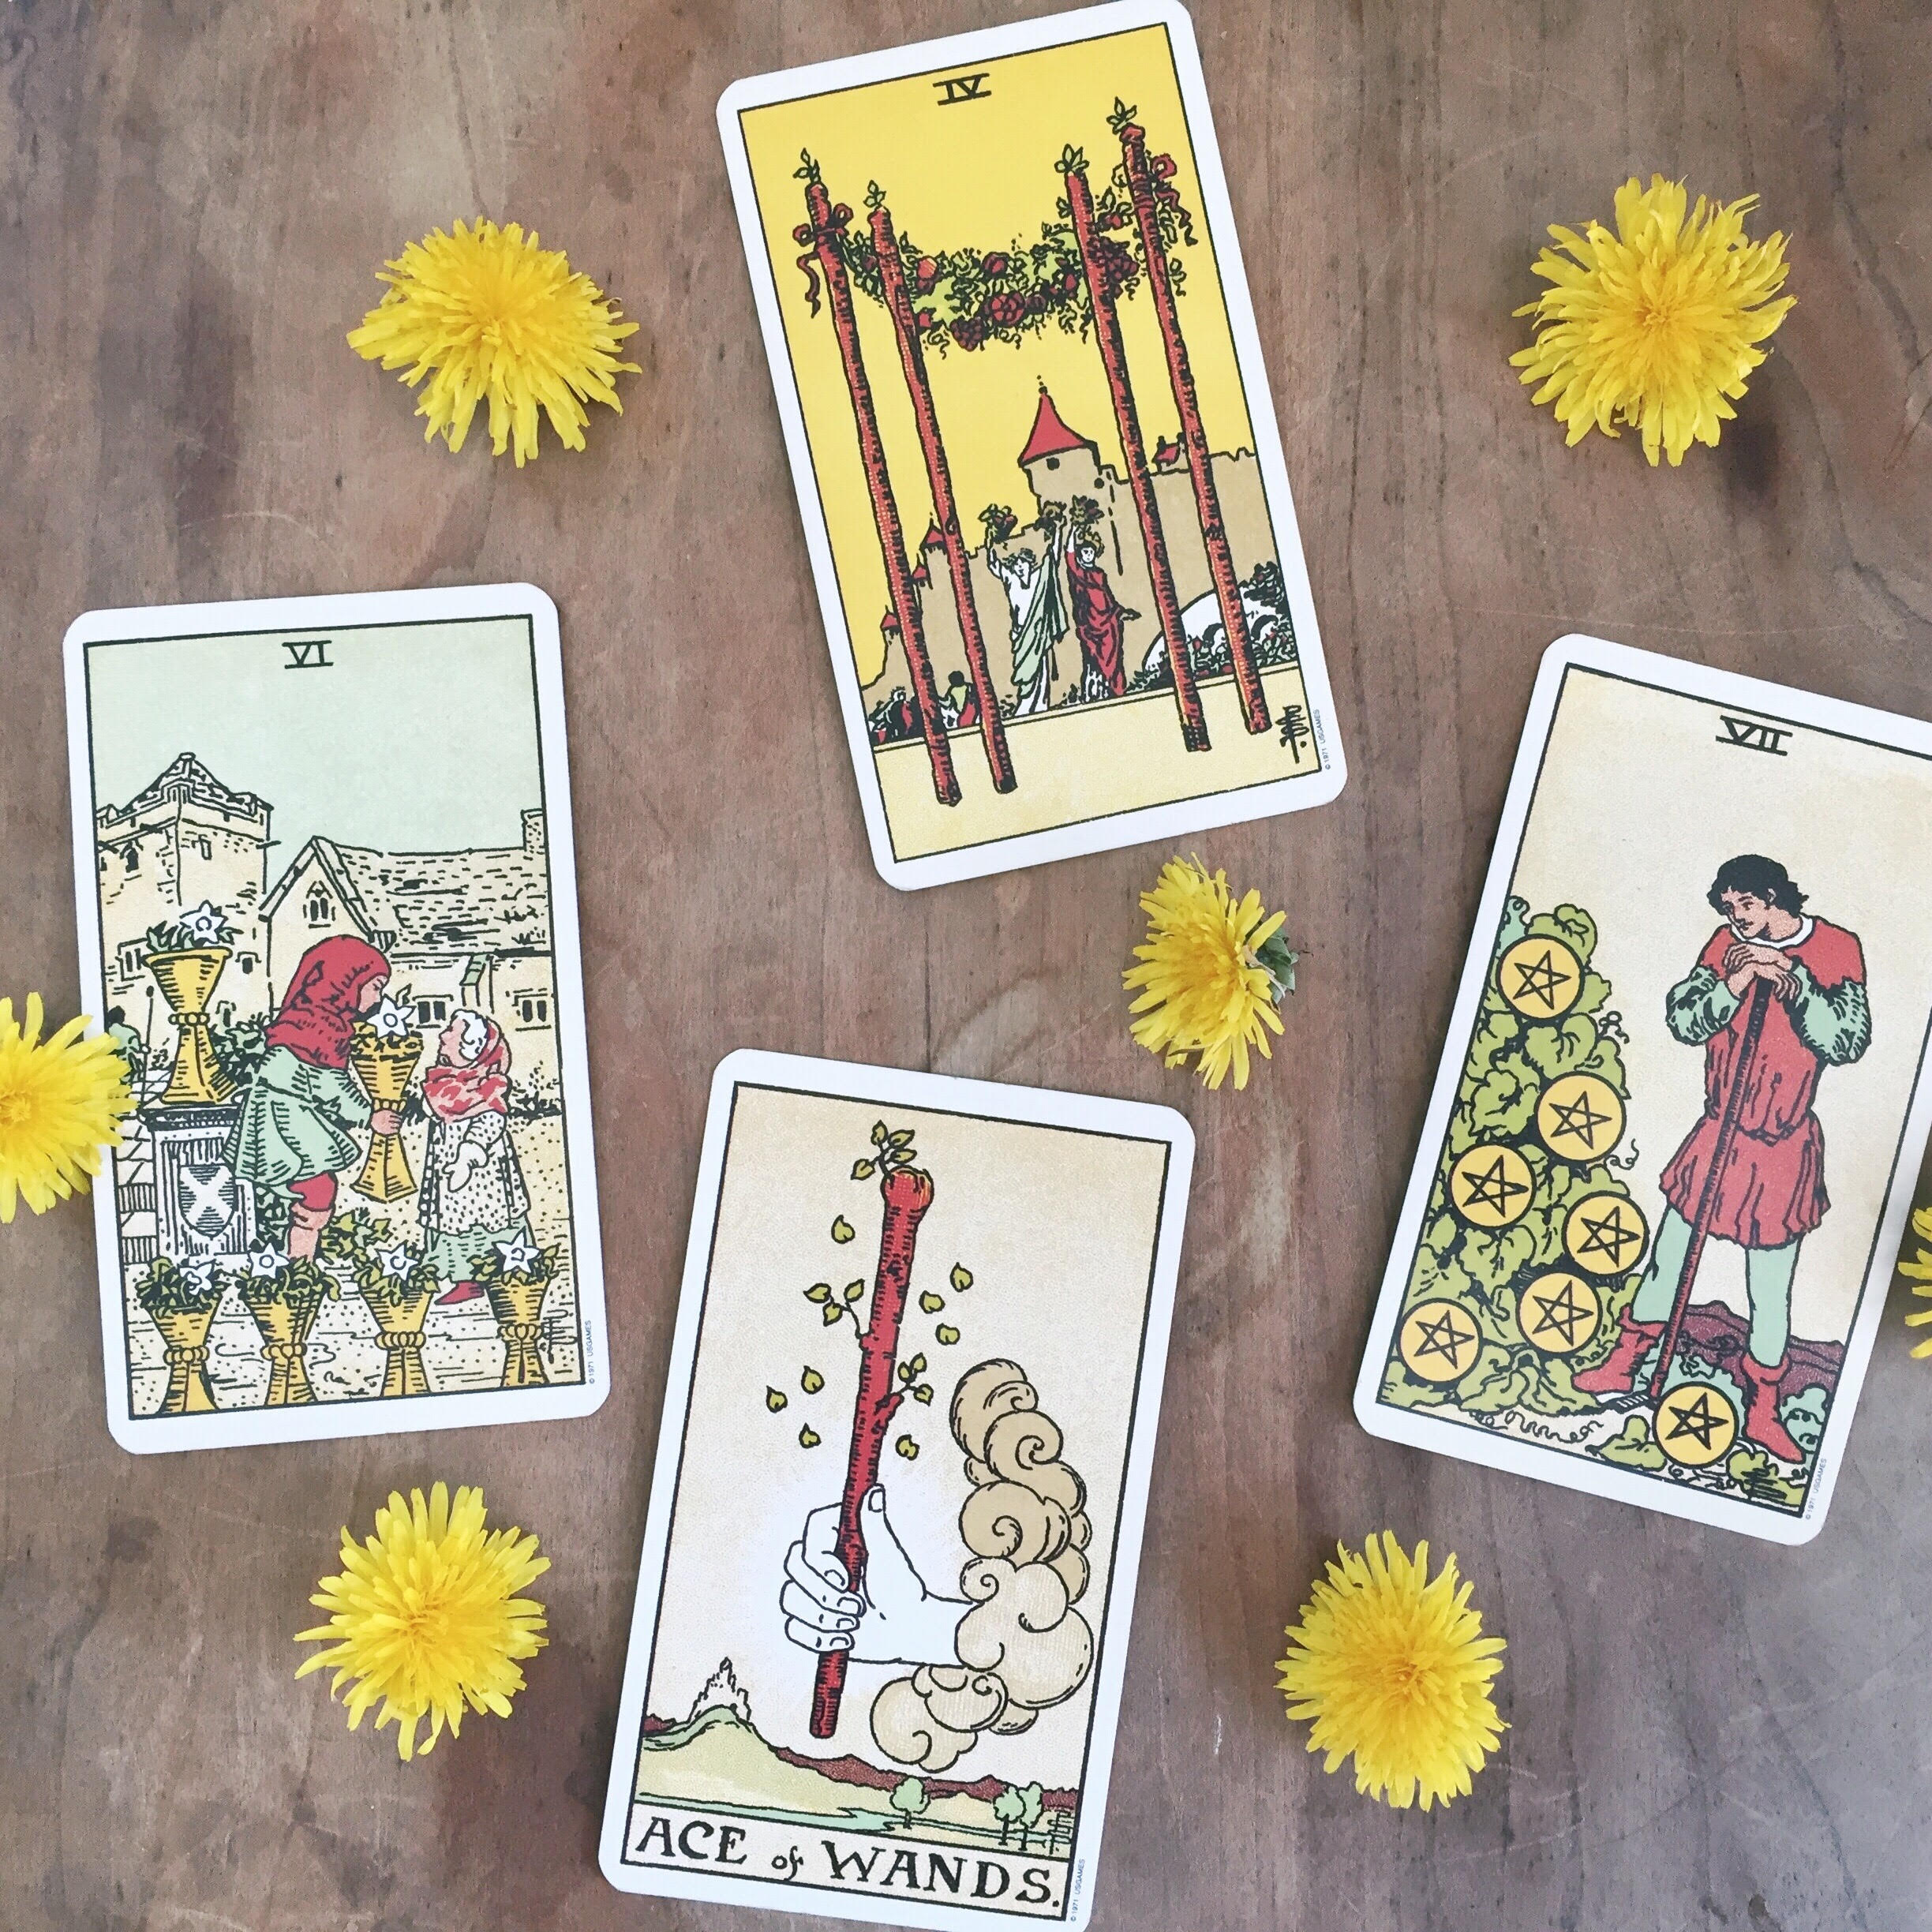 Rider Waite Tarot Card Reading with Flowers